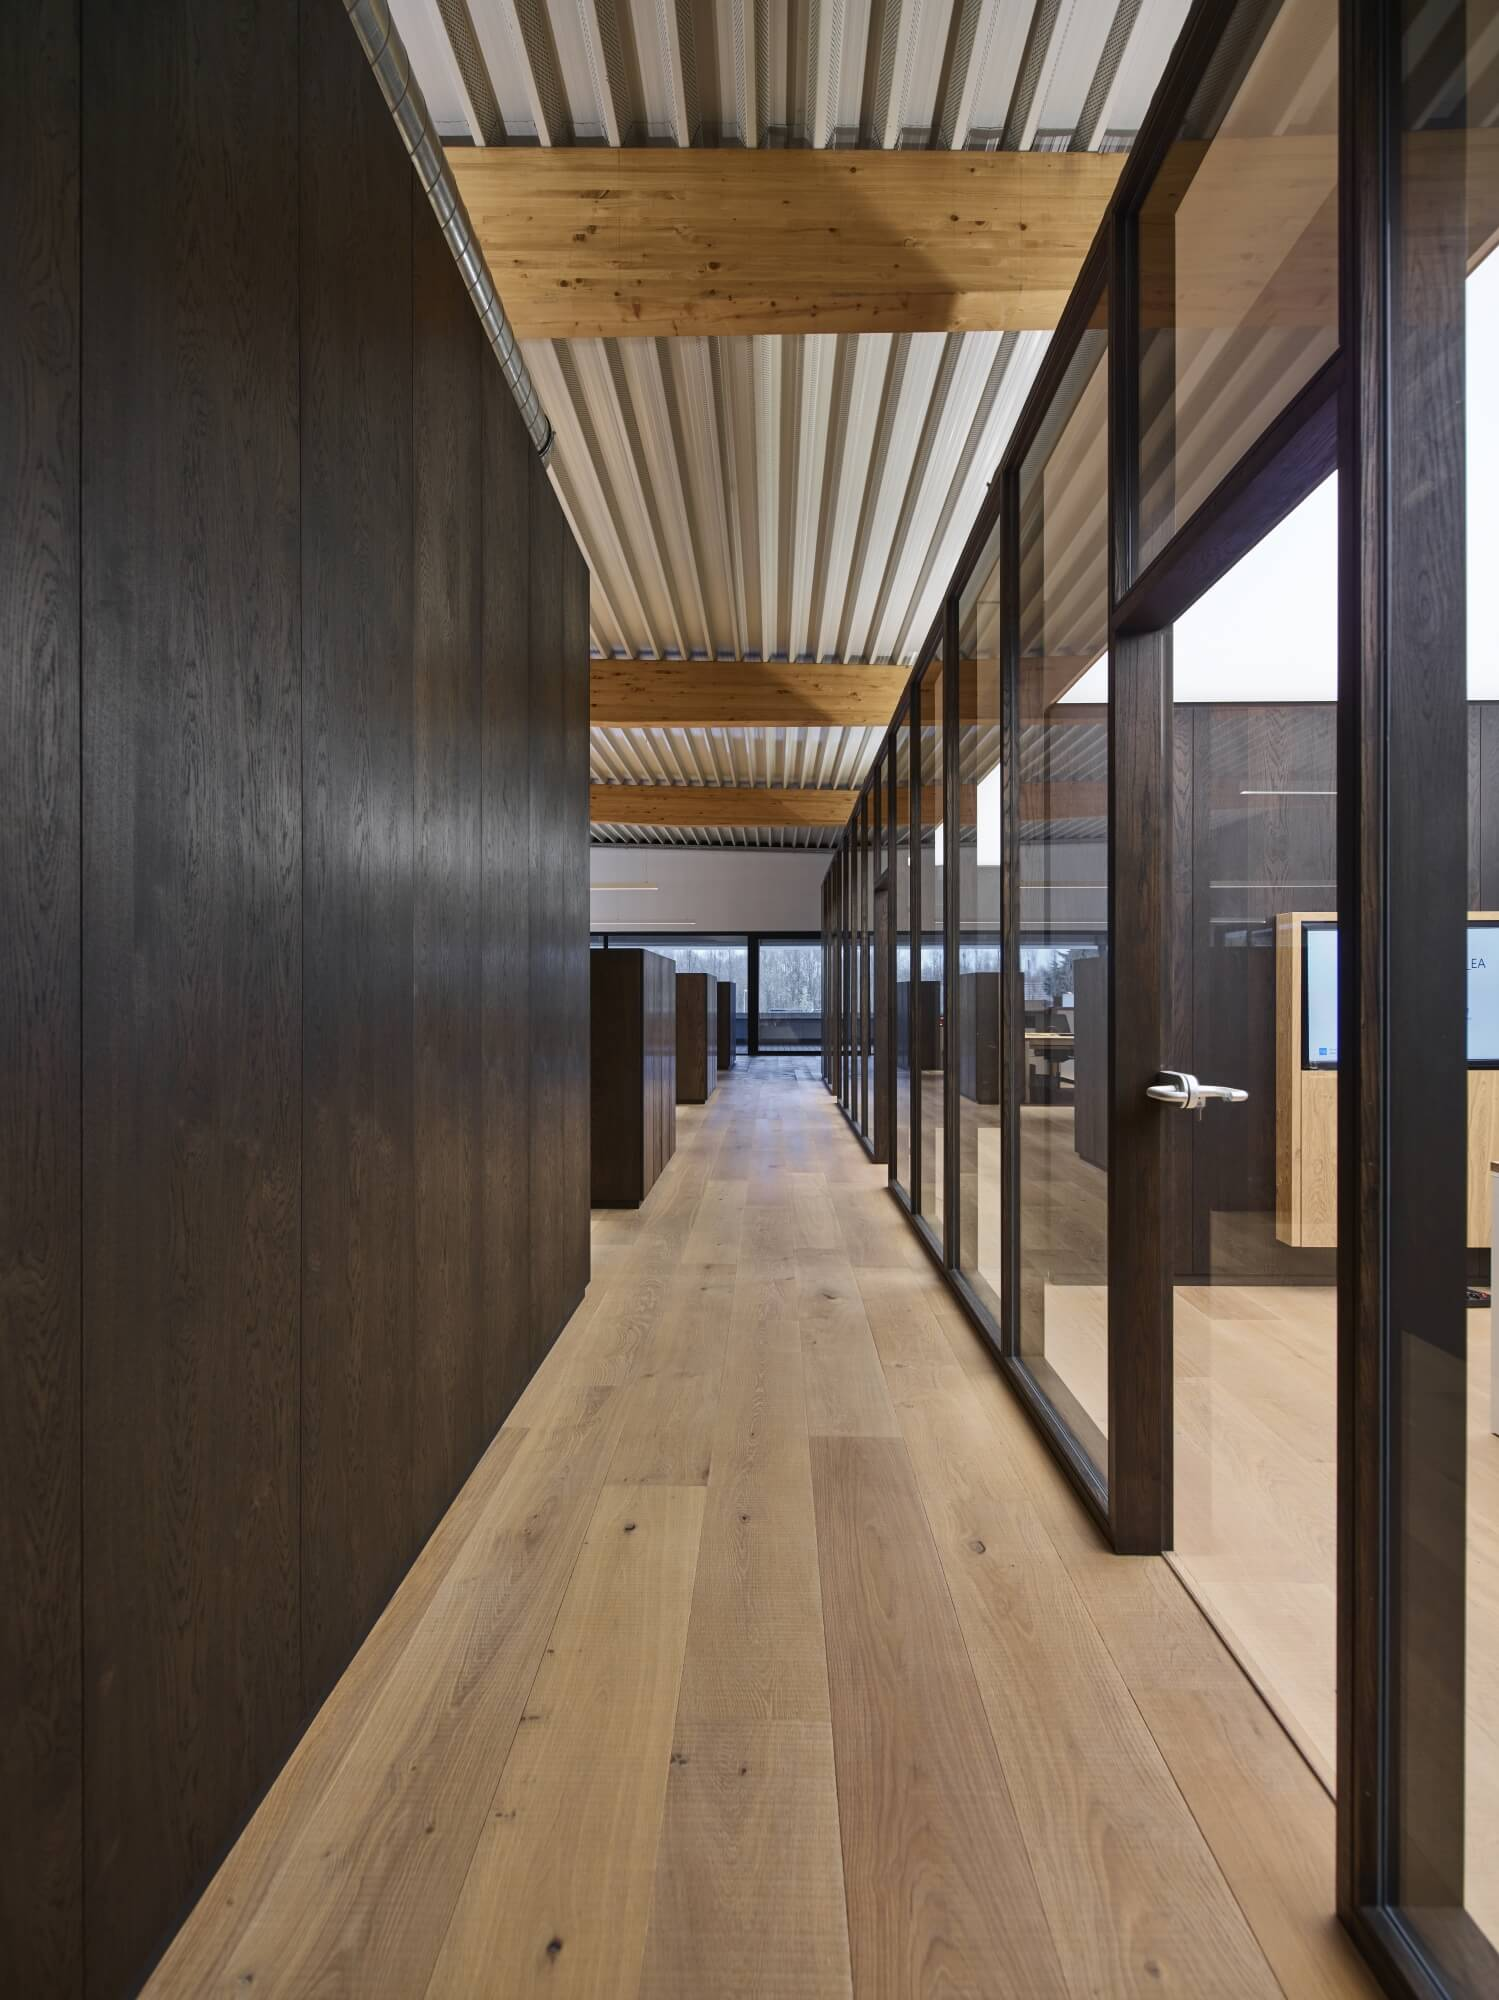 A hallway with wood floors, wood wall panels and glass office barriers at the Rubio Monocoat headquarters.